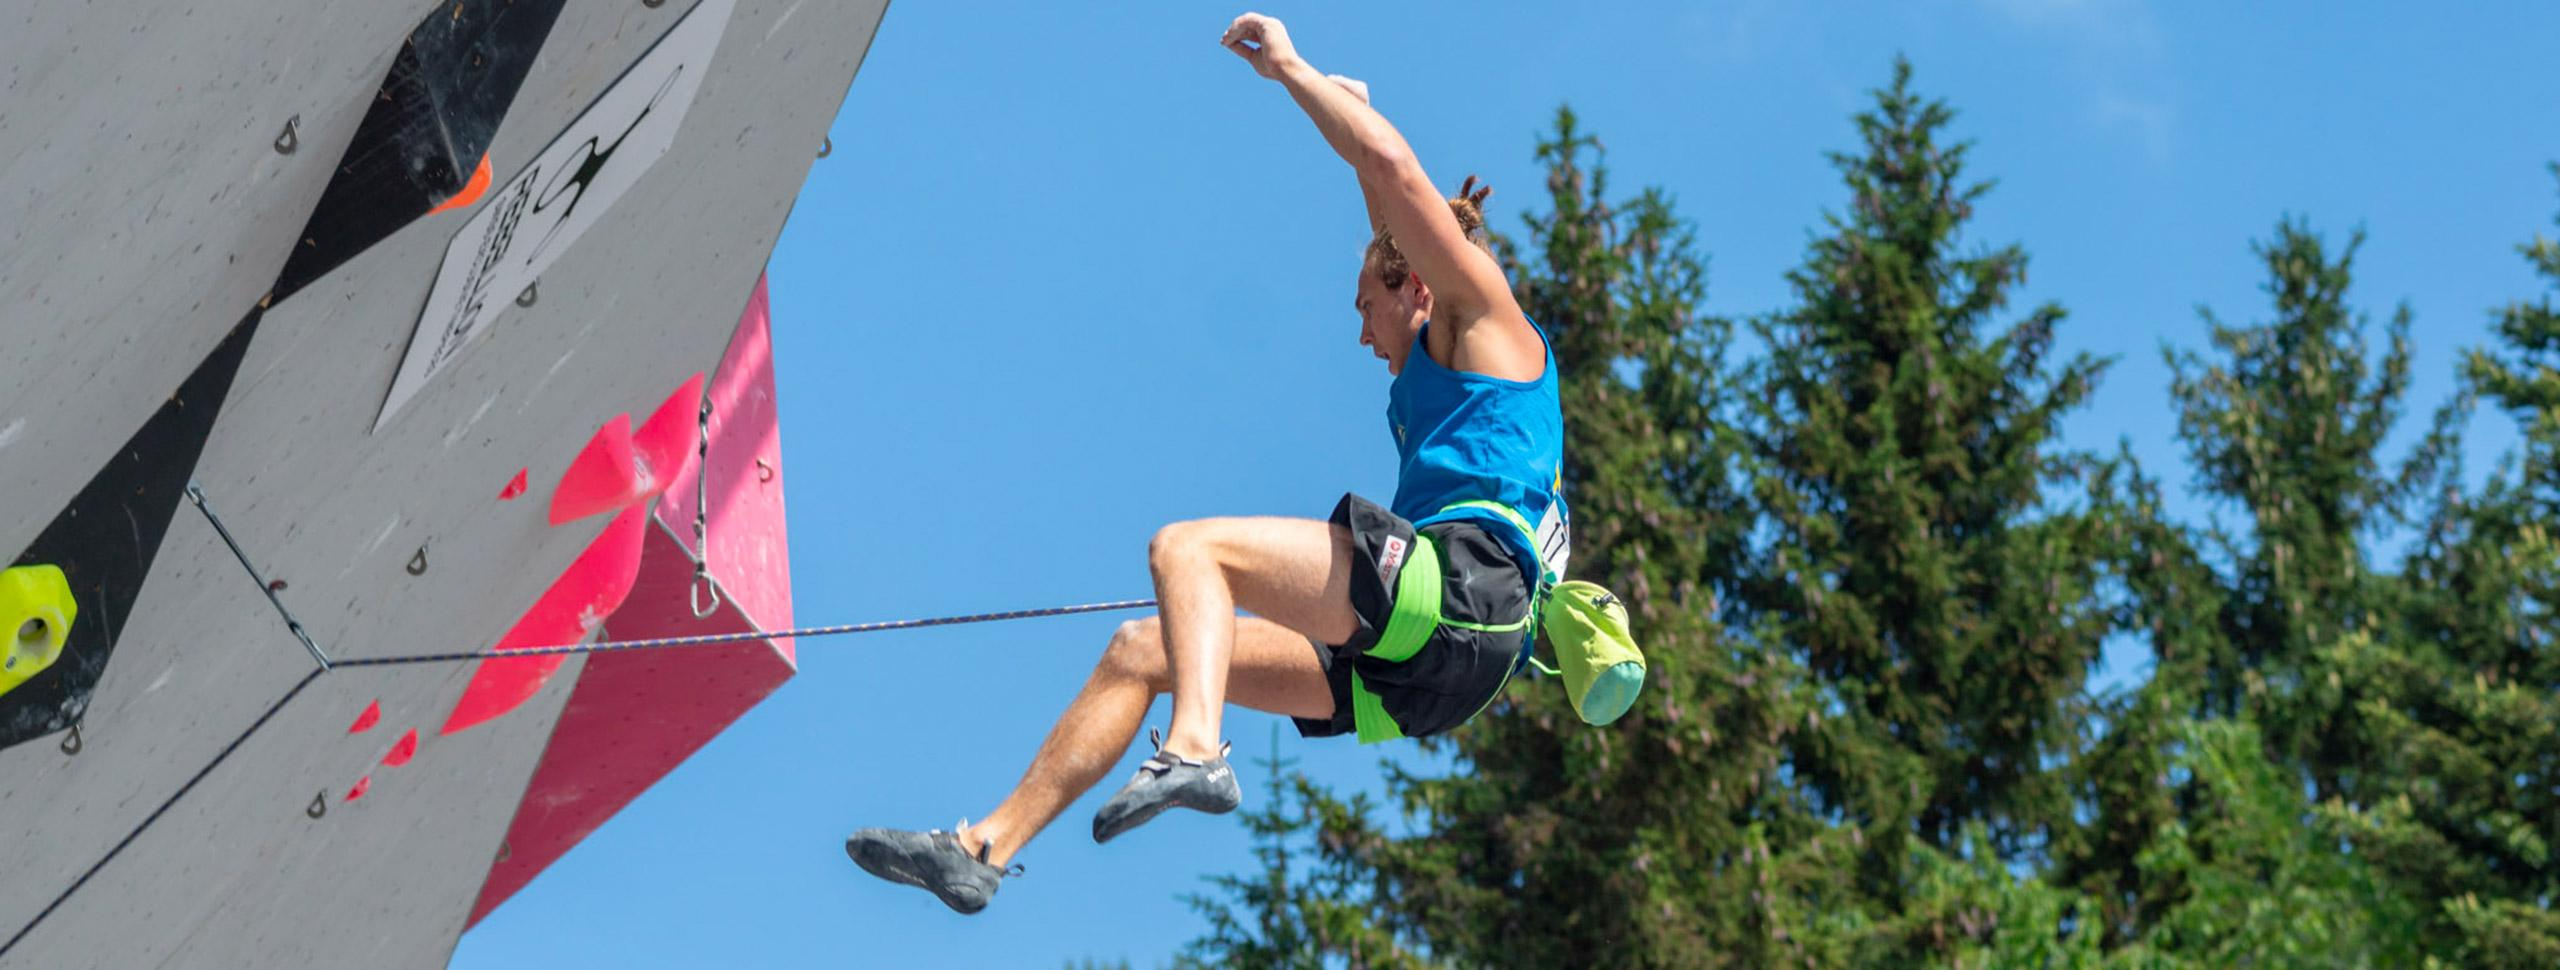 IFSC World Cup Villars to Gain an International Viewership